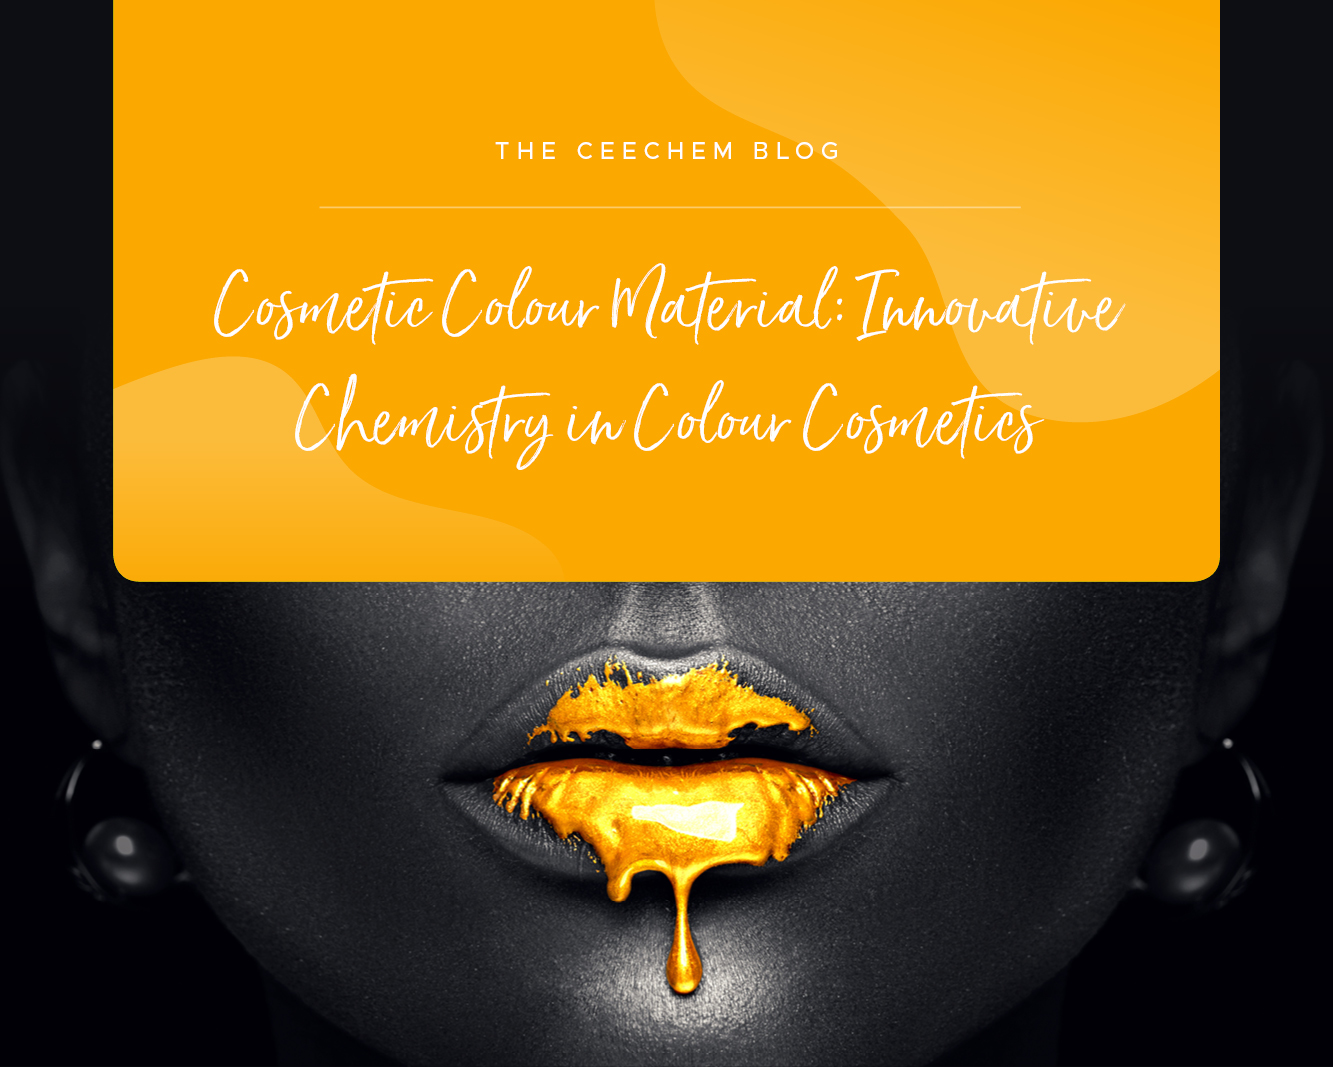 Cosmetic Colour Material: Innovative Chemistry in Colour Cosmetics